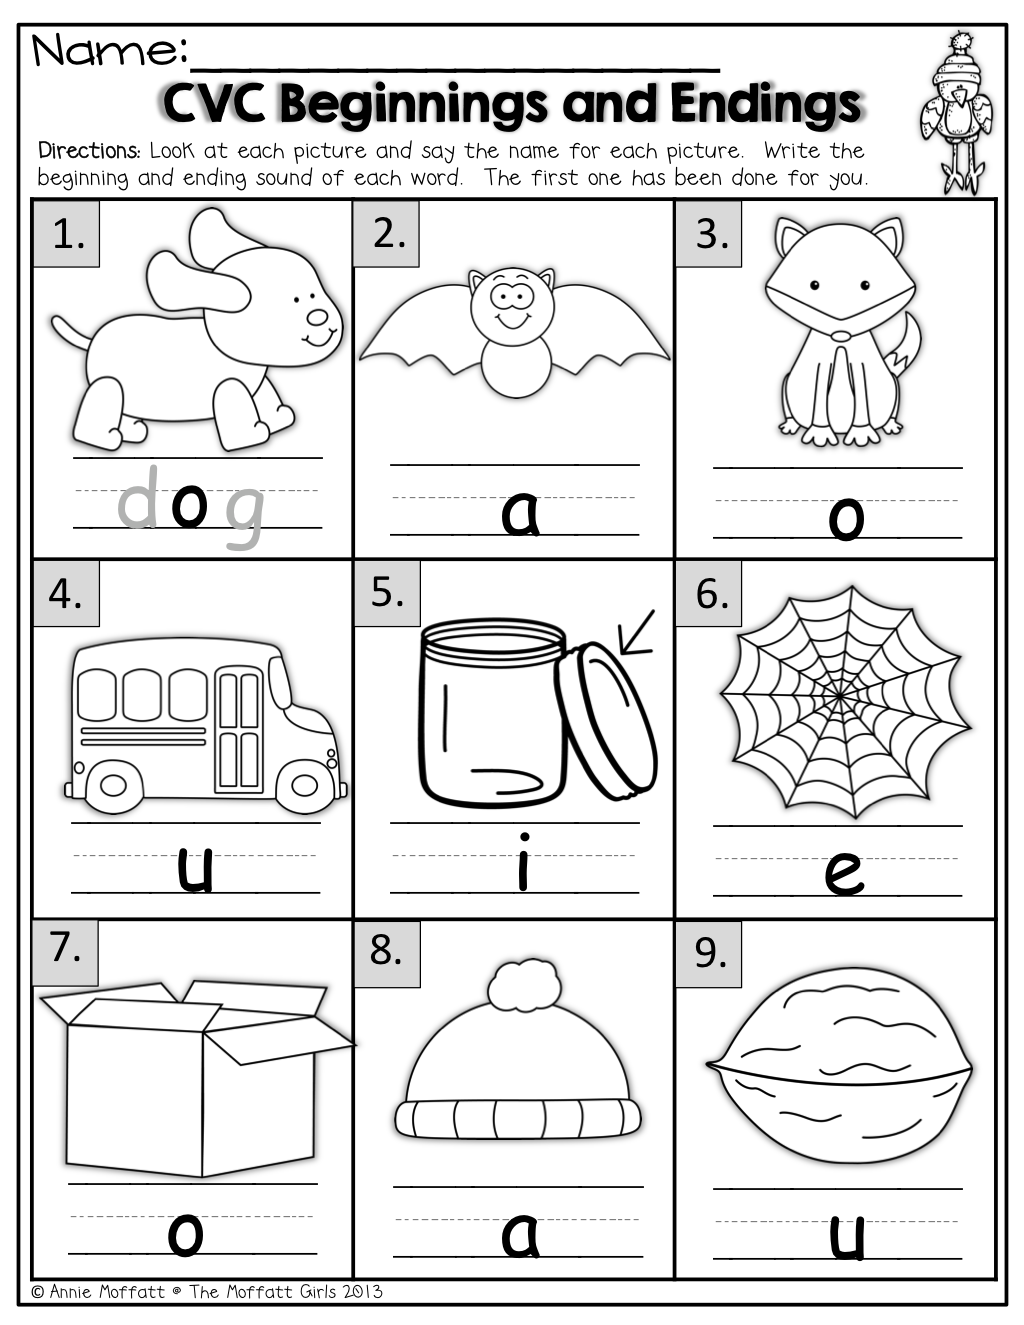 Printable Ending Sound Worksheets For Kindergarten 121454